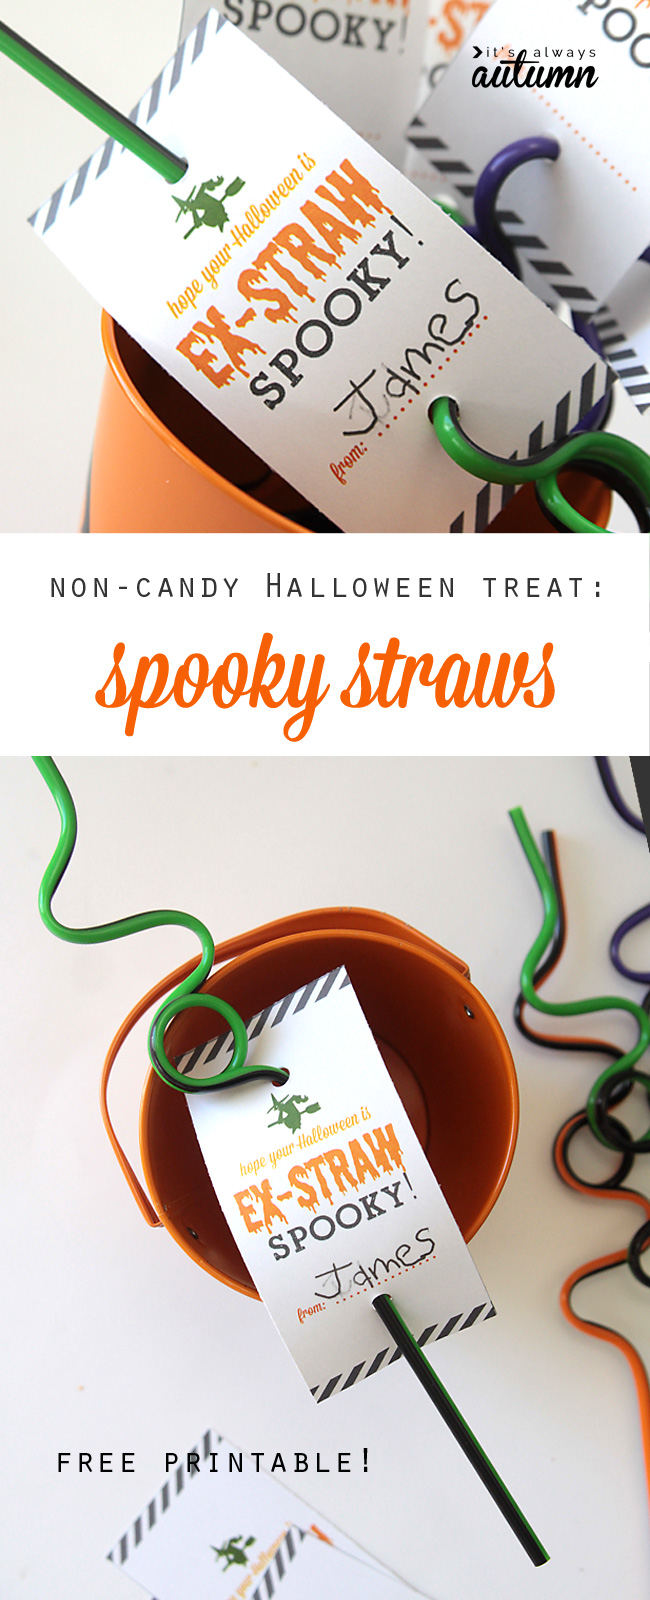 Great idea for a non-candy Halloween treat or party favor: spooky straws with free printable tag